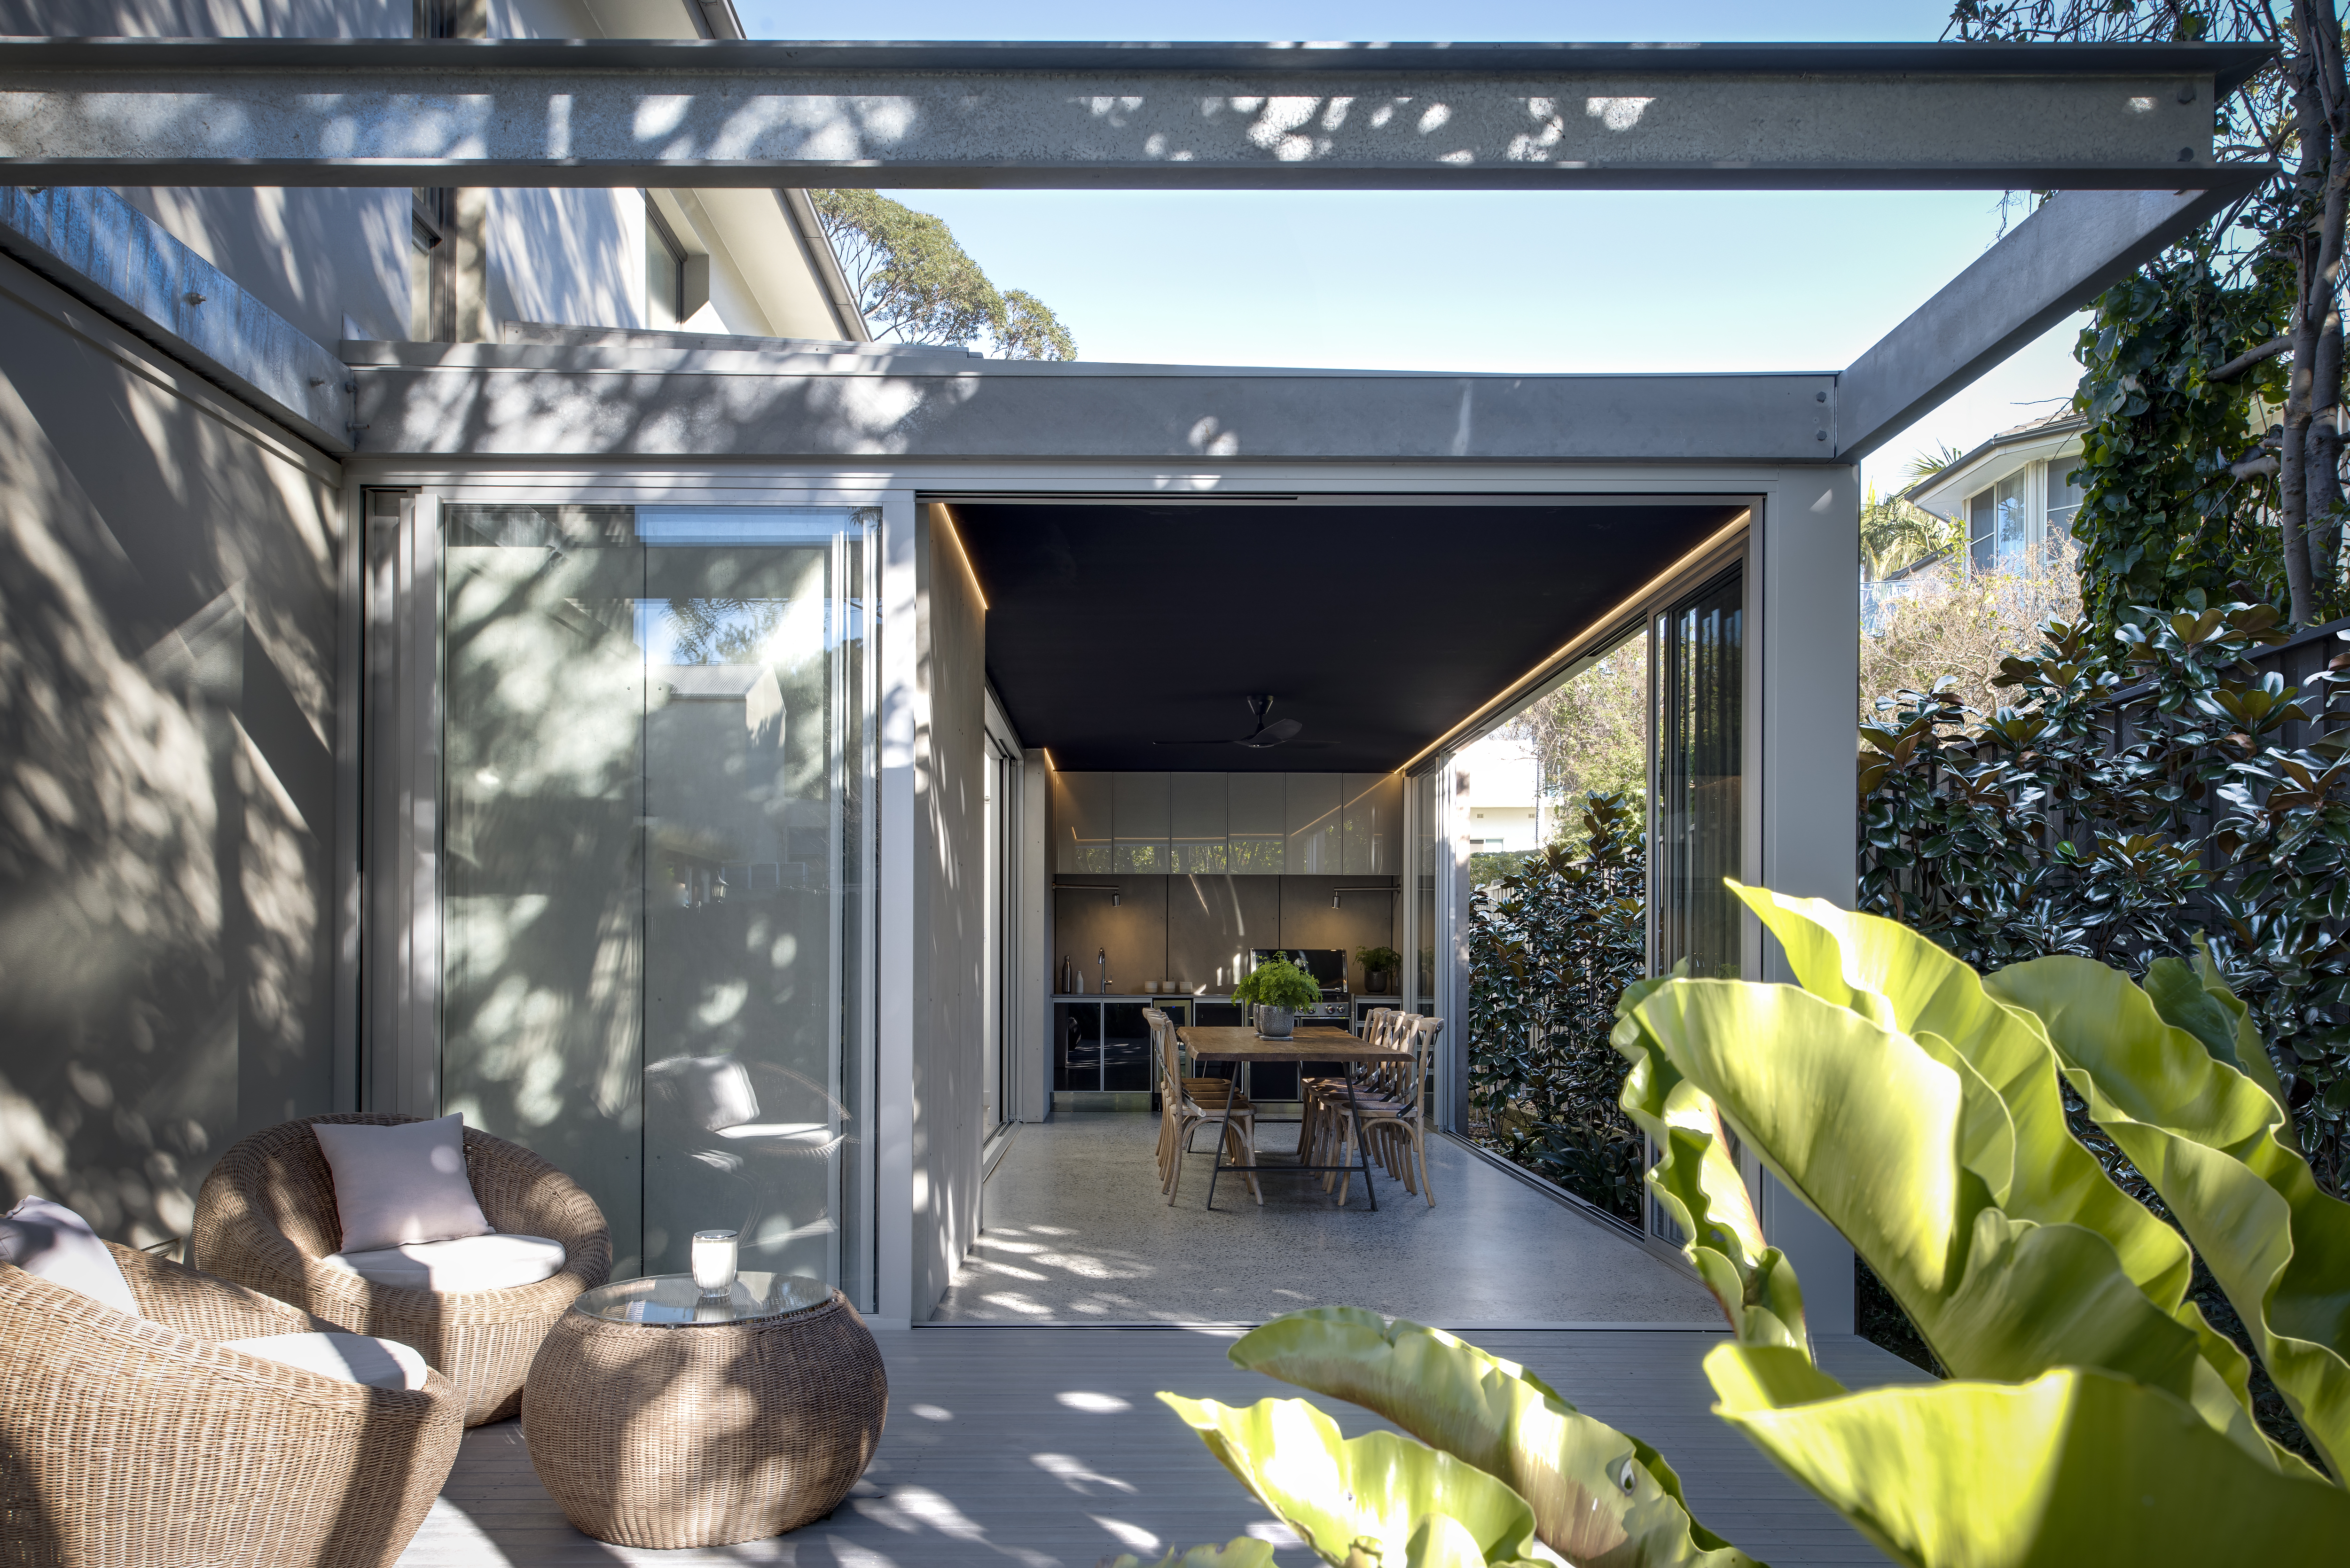 70 Henley Residence – Deck view